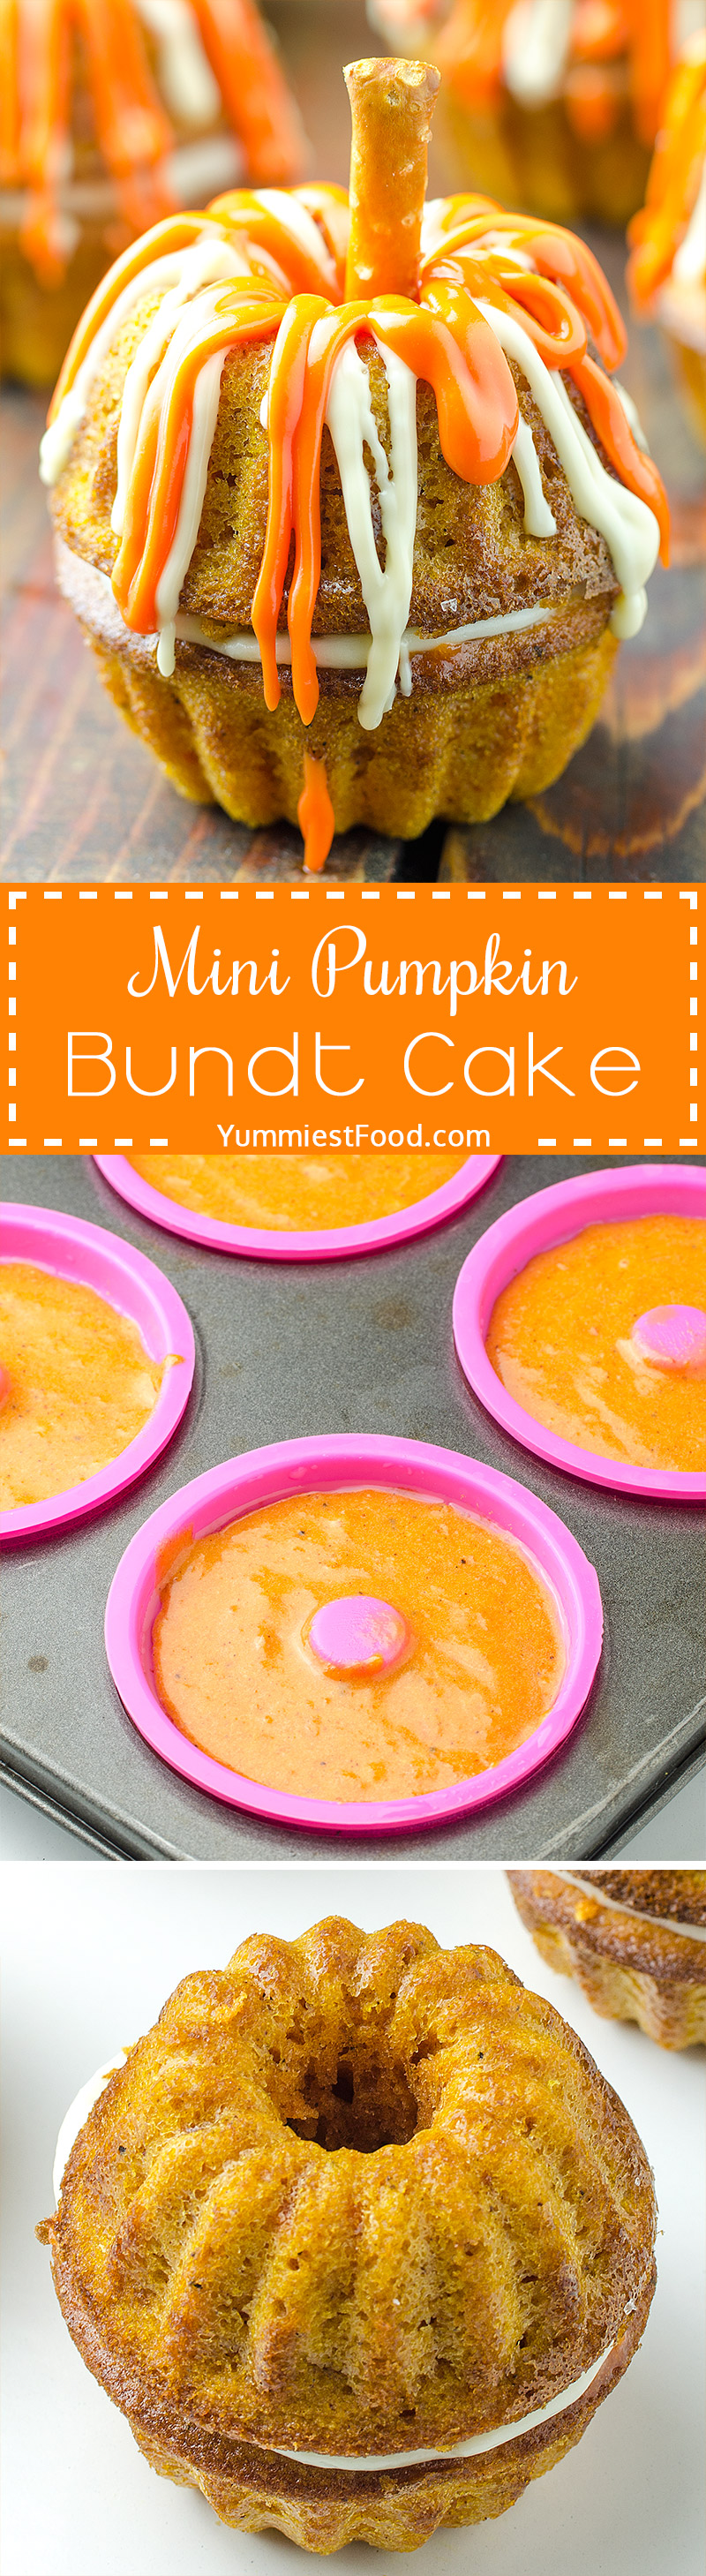 Mini Pumpkin Bundt Cake - A frighteningly delicious treat with pumpkin and cream cheese filling